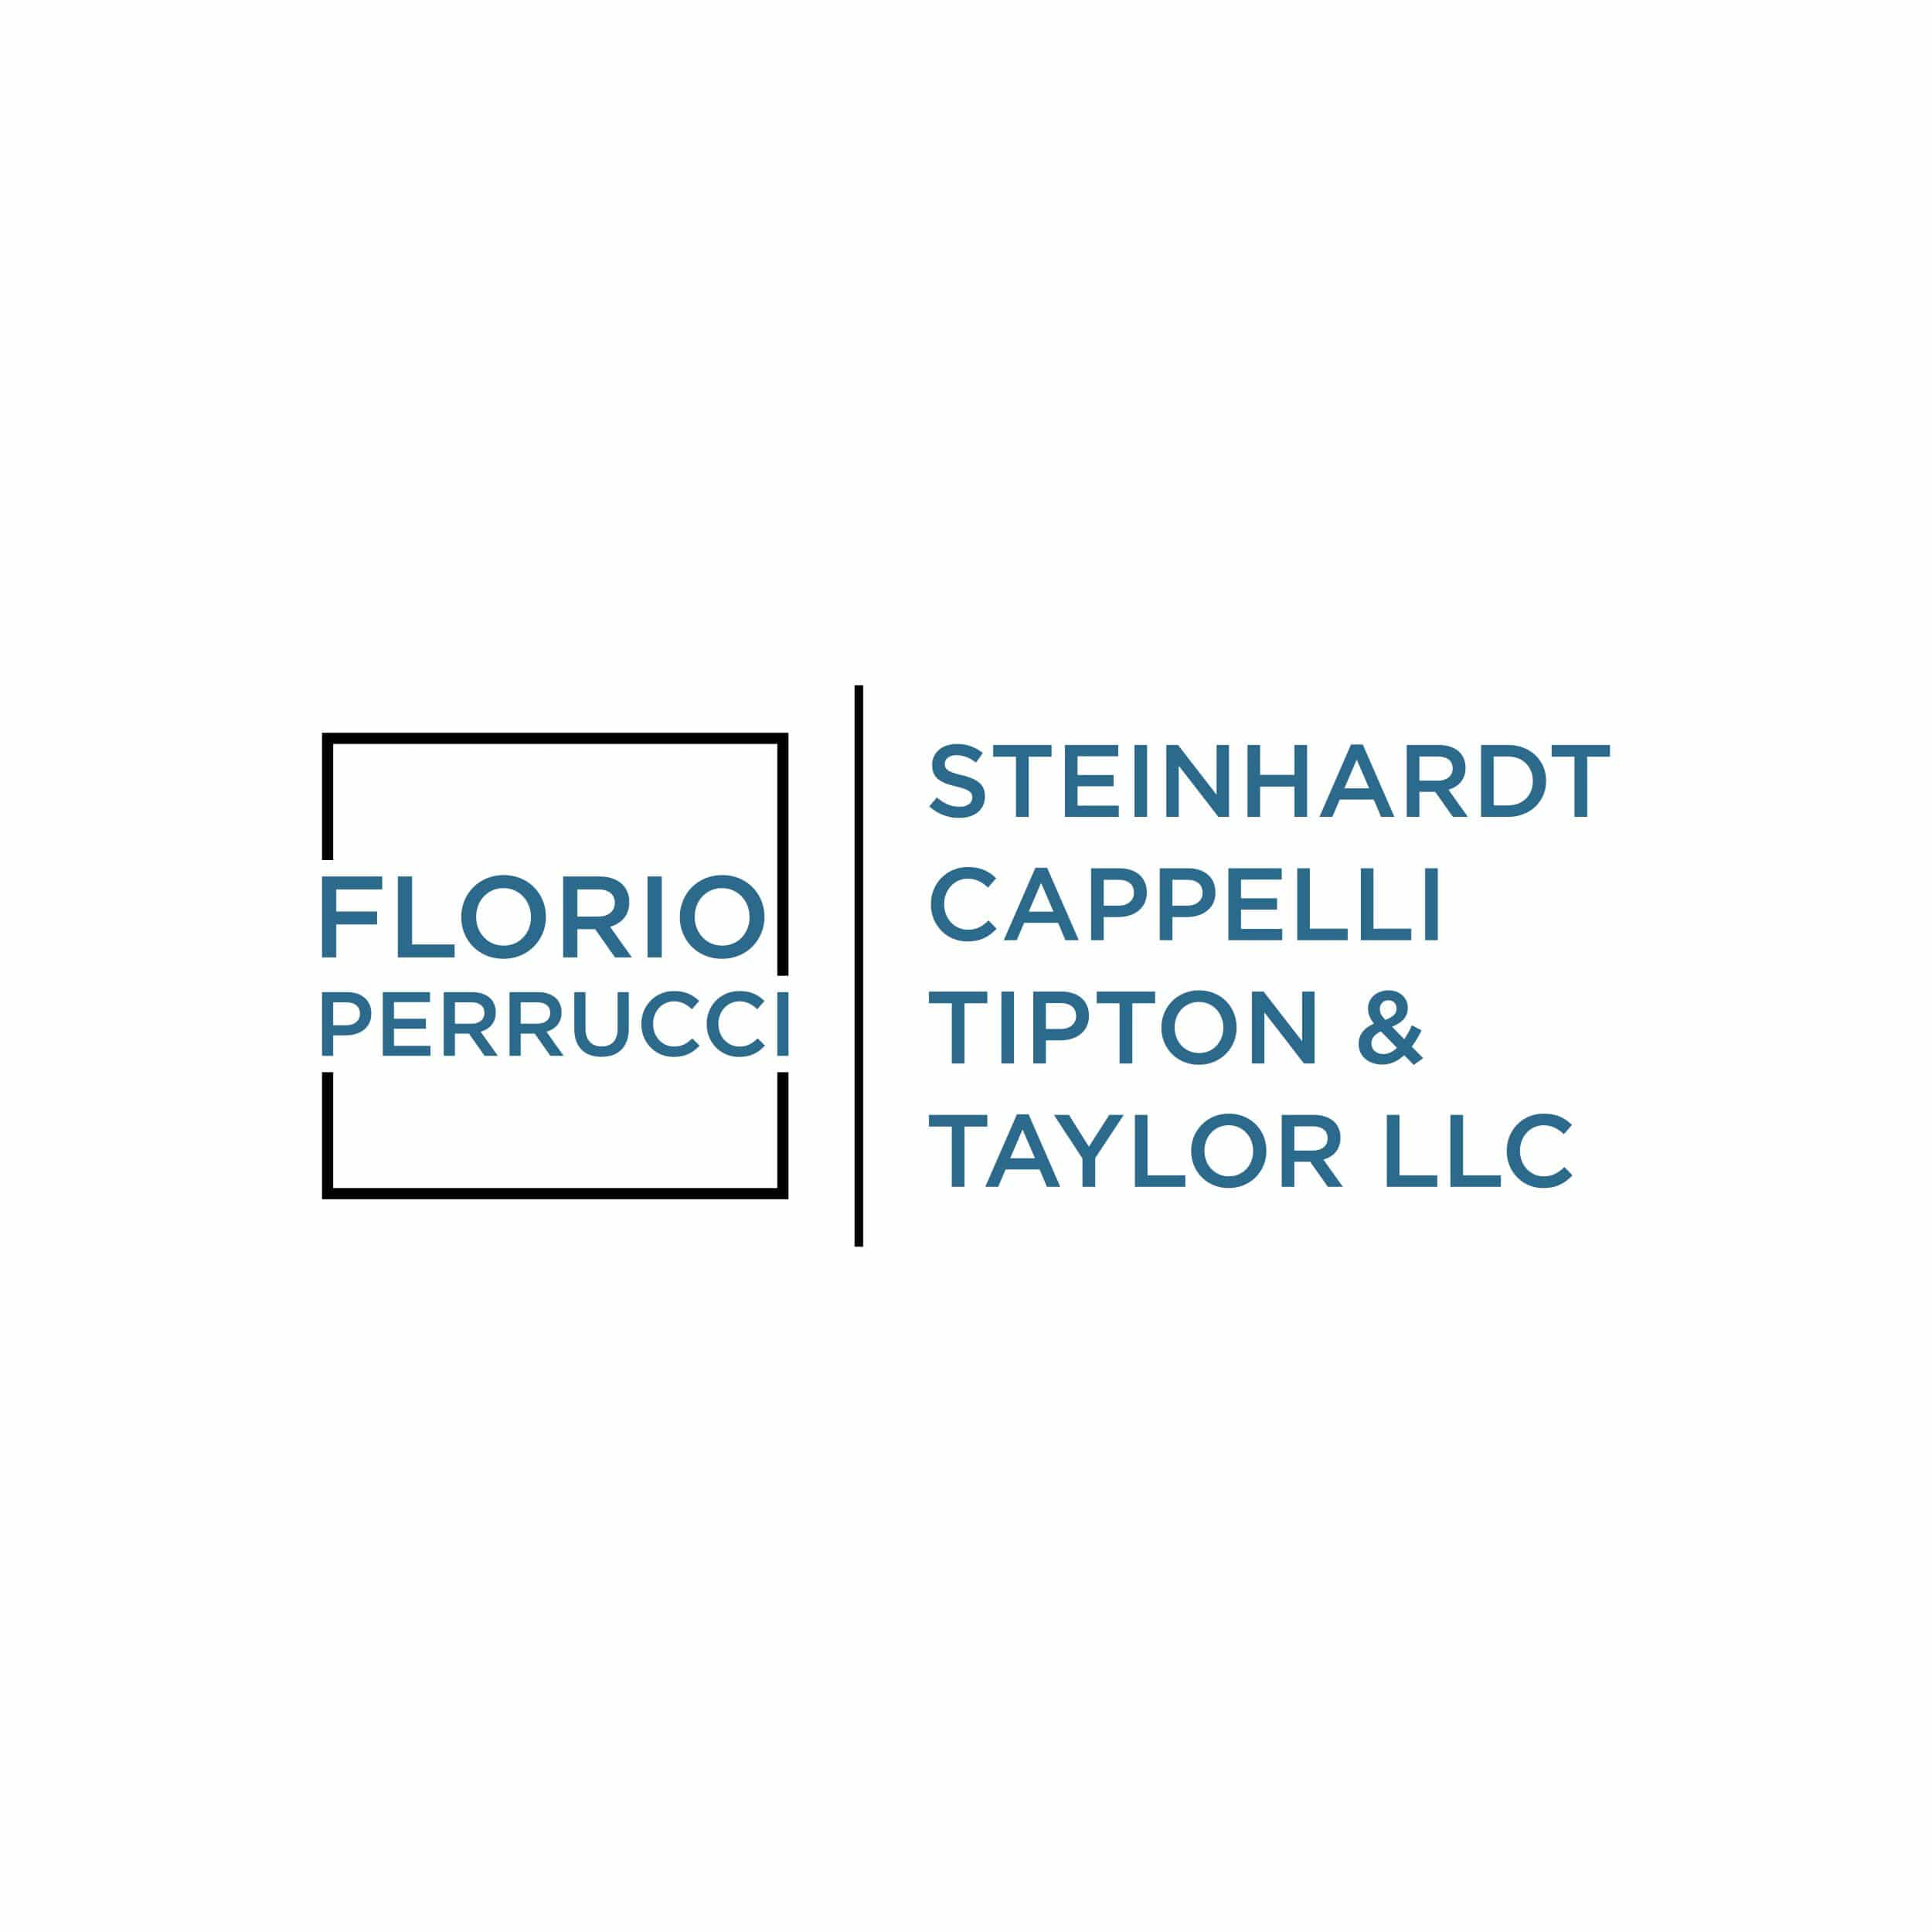 Florio Perrucci Featured in the New Jersey Law Journal